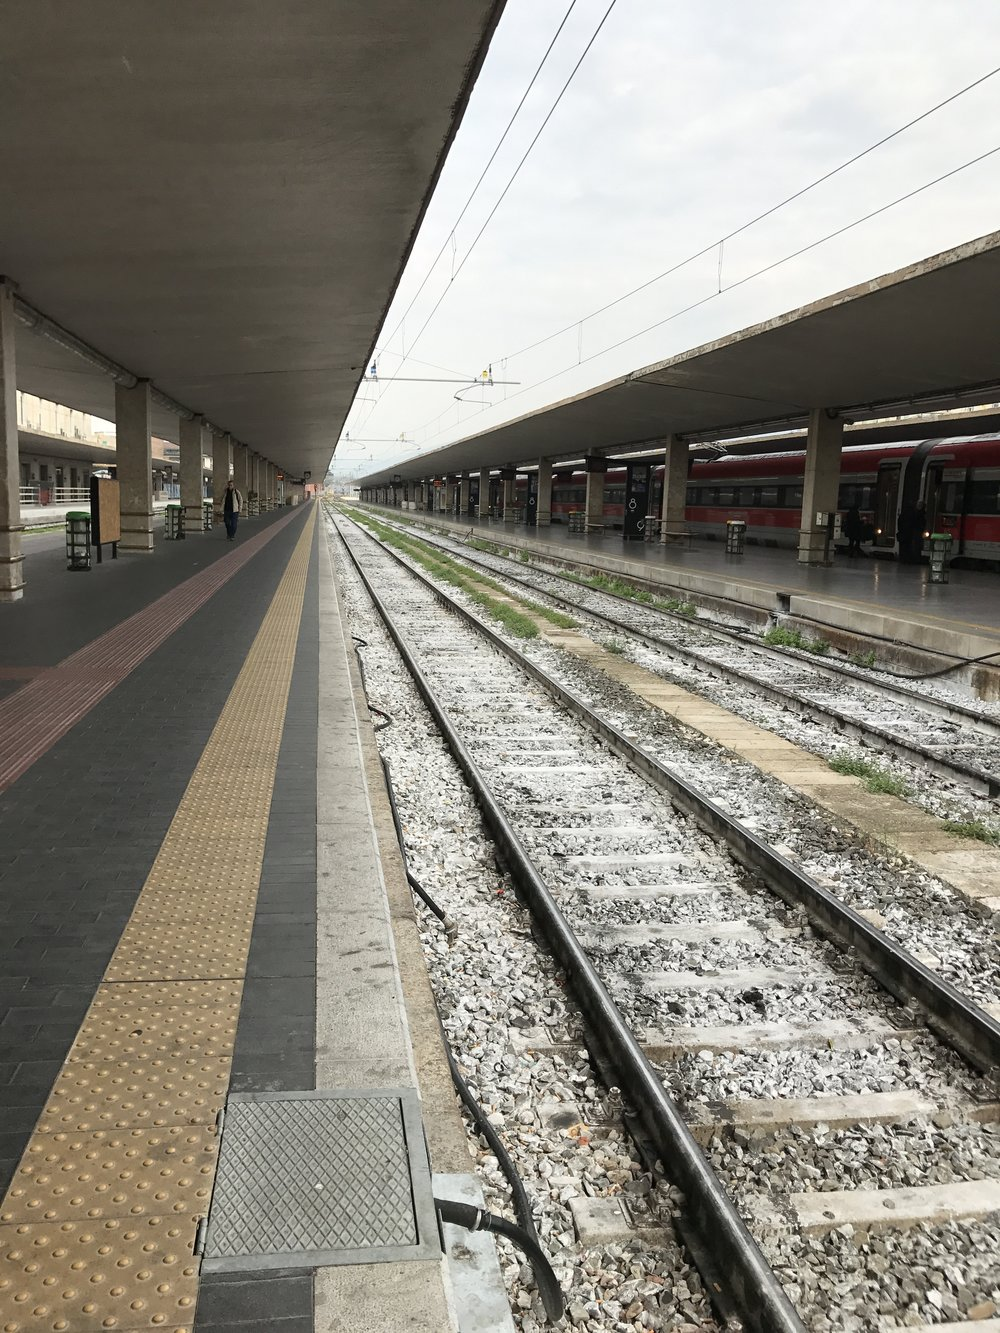 The tracks at Firenze SMN